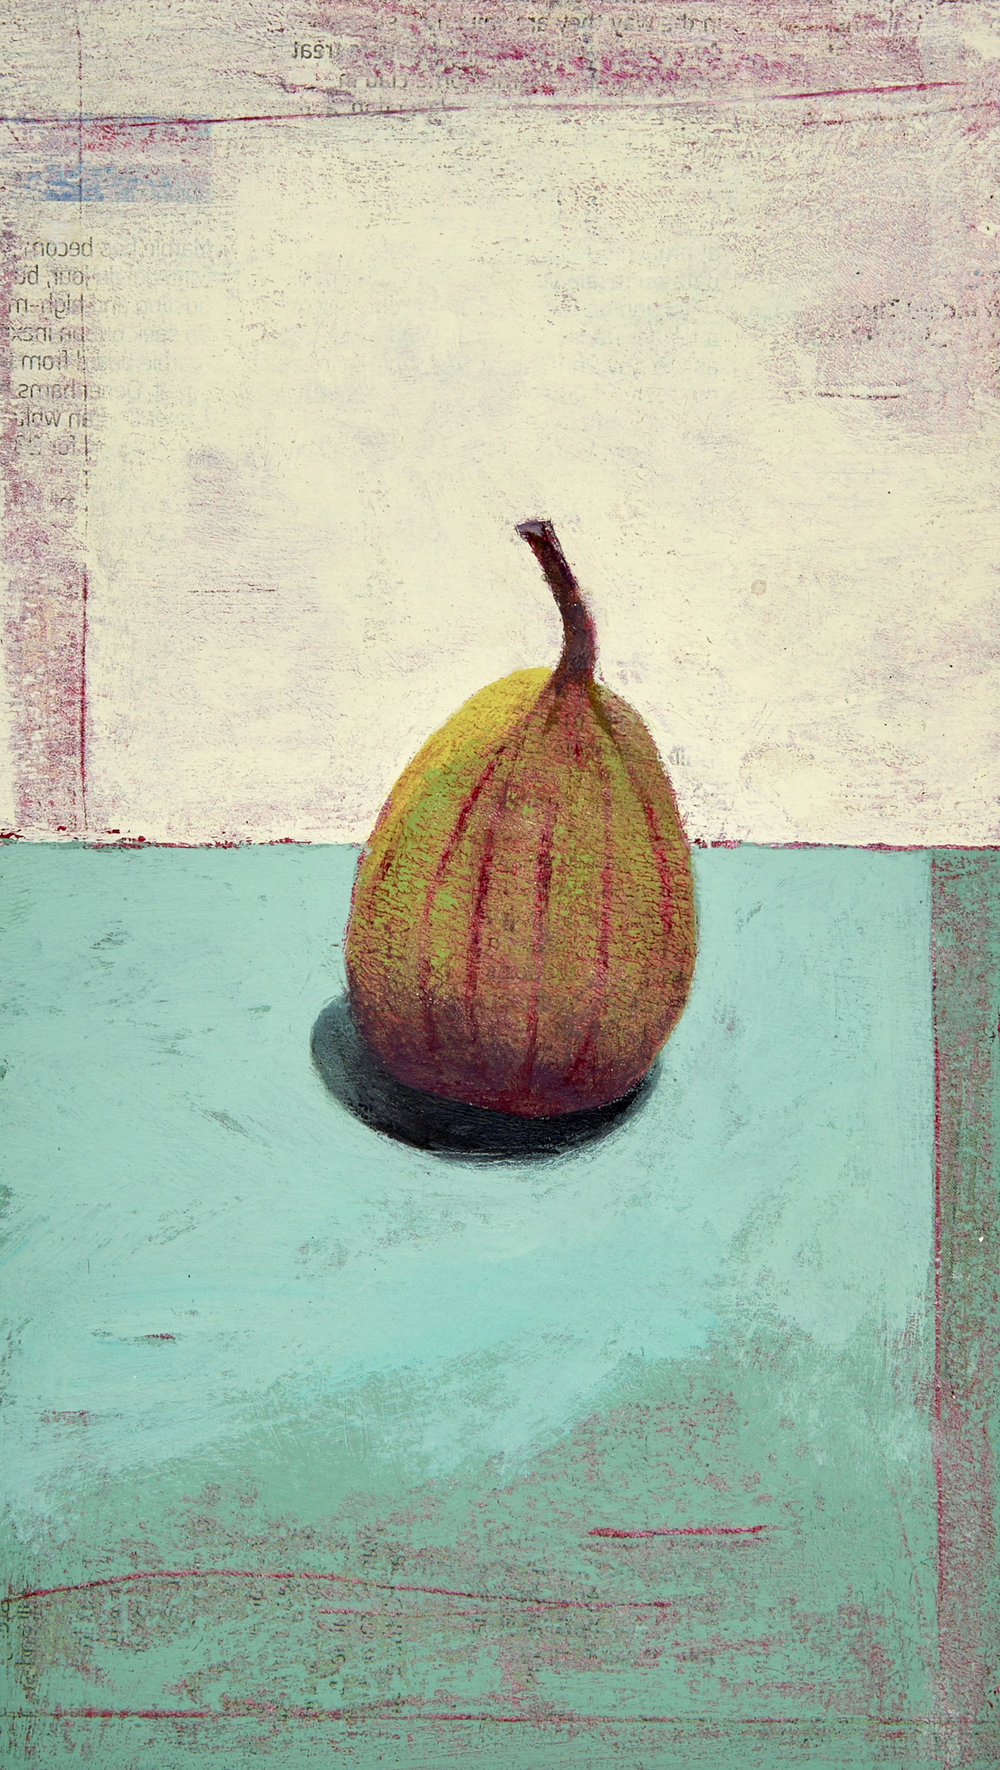 David Lyon Art - Green Fig - 150dpi.jpg